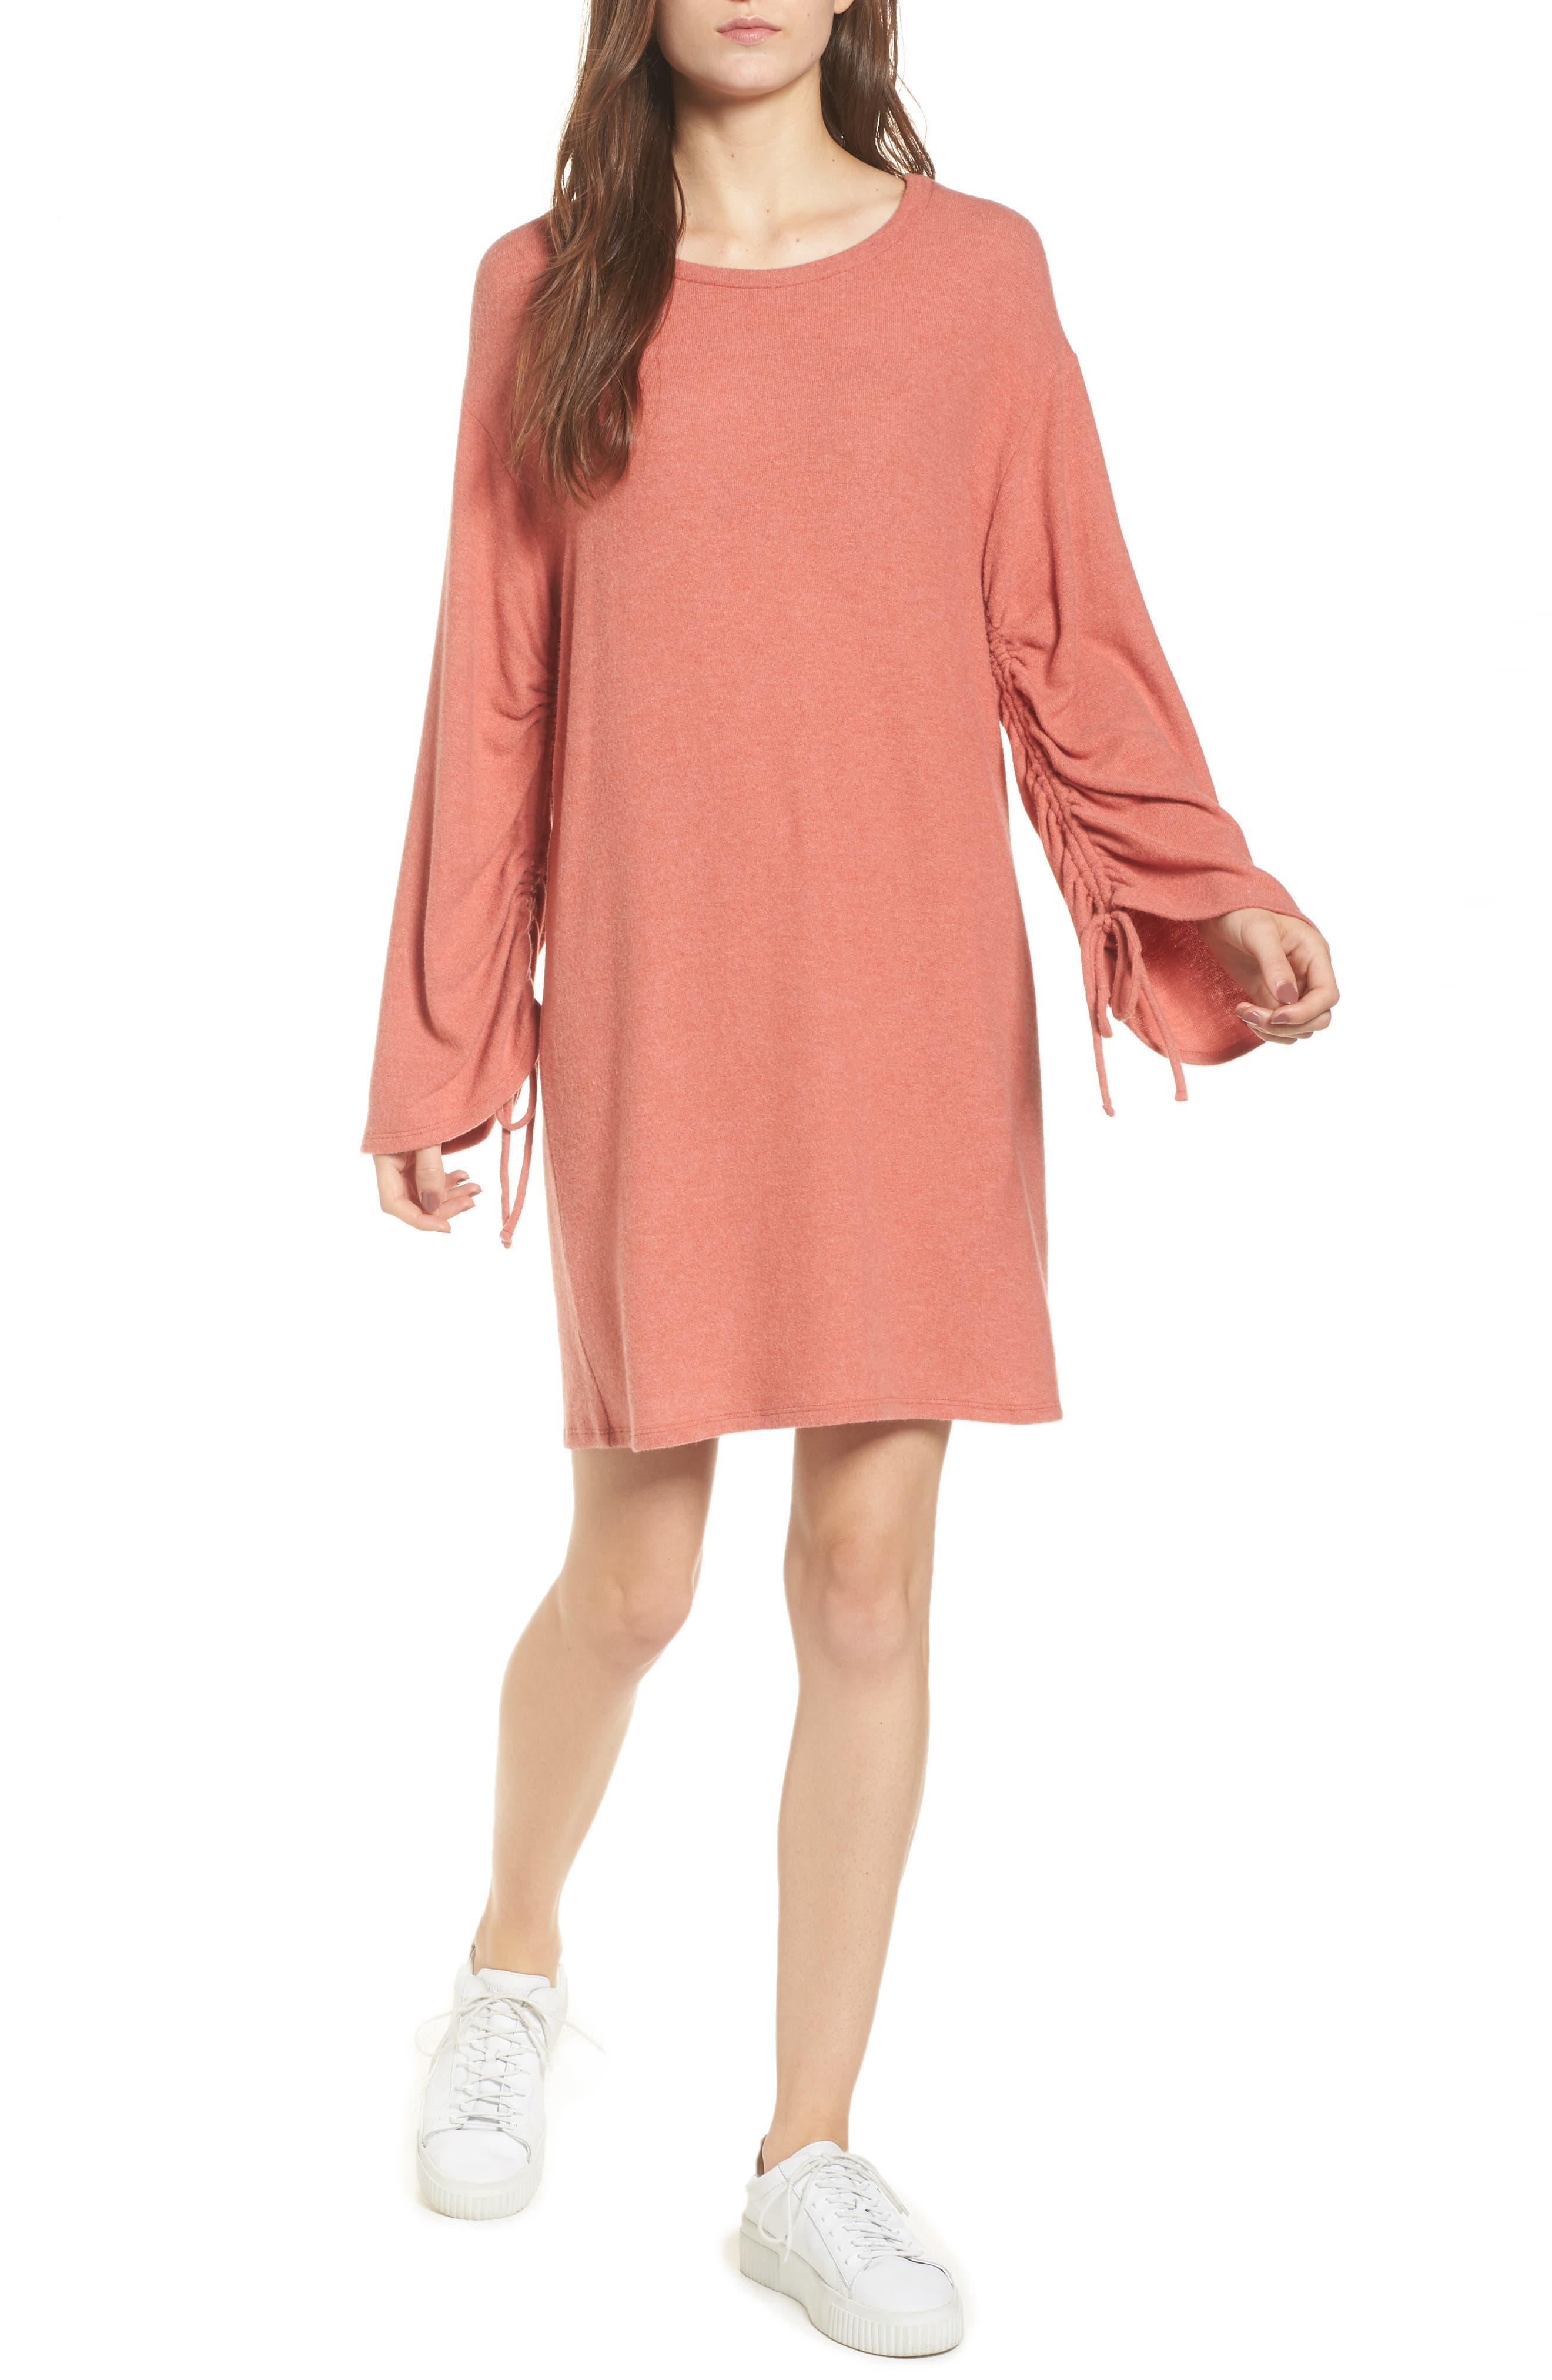 One Clothing Ruched Sleeve Sweater Dress